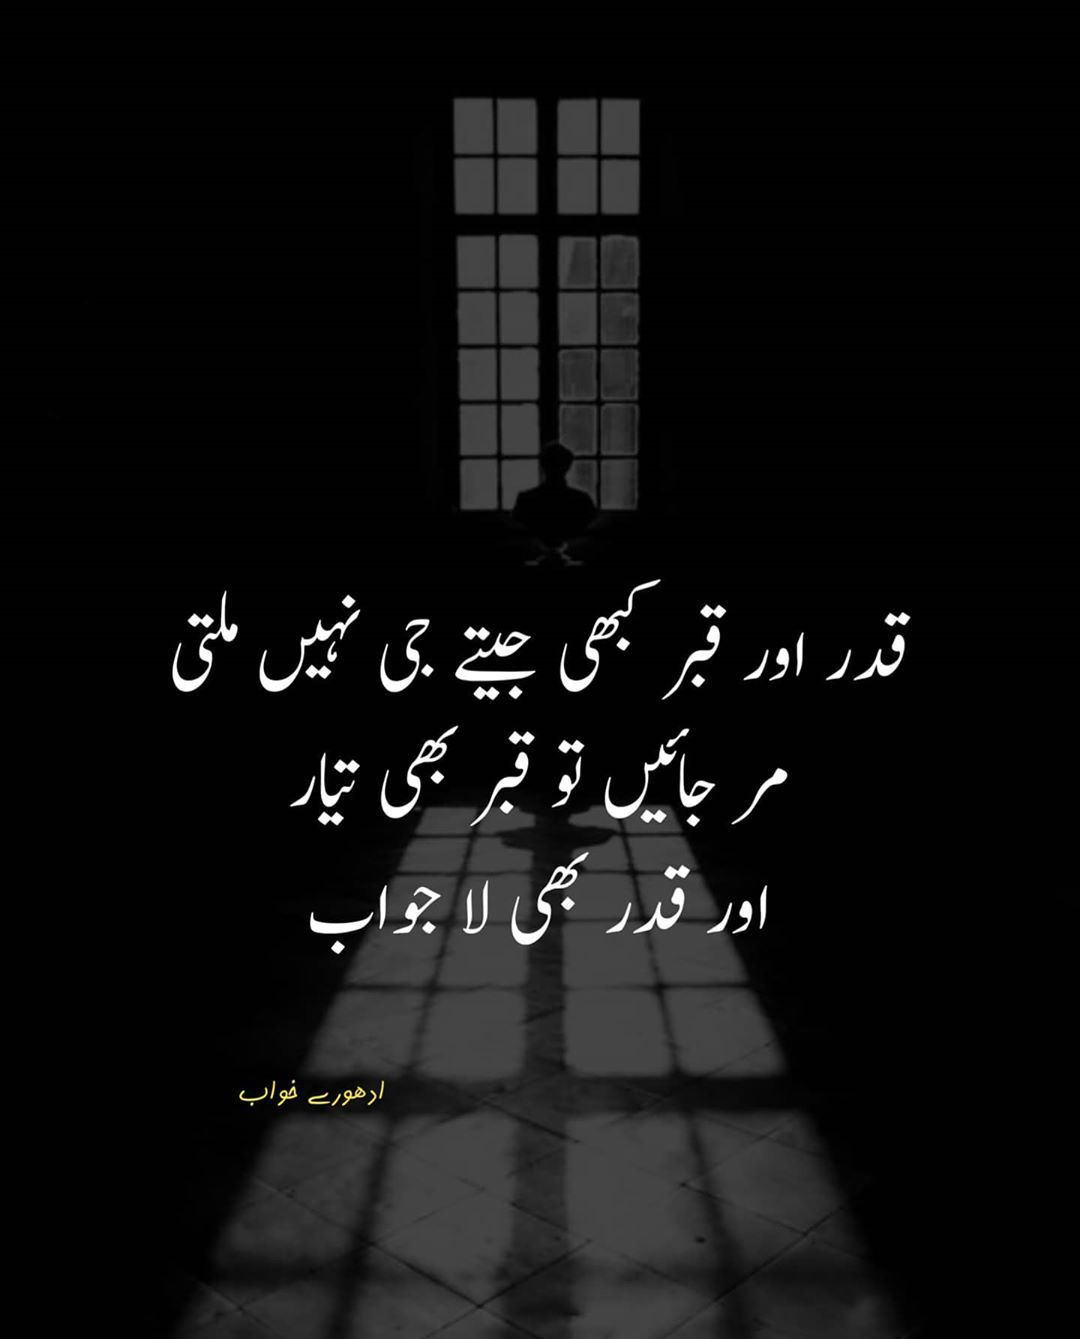 7 Likes 1 Comments Adhoore Khuwab Official Adhoore Khuwab On Instagram Qadar Or Qabar Ka Inspirational Quotes Motivation Urdu Funny Quotes Funny Quotes